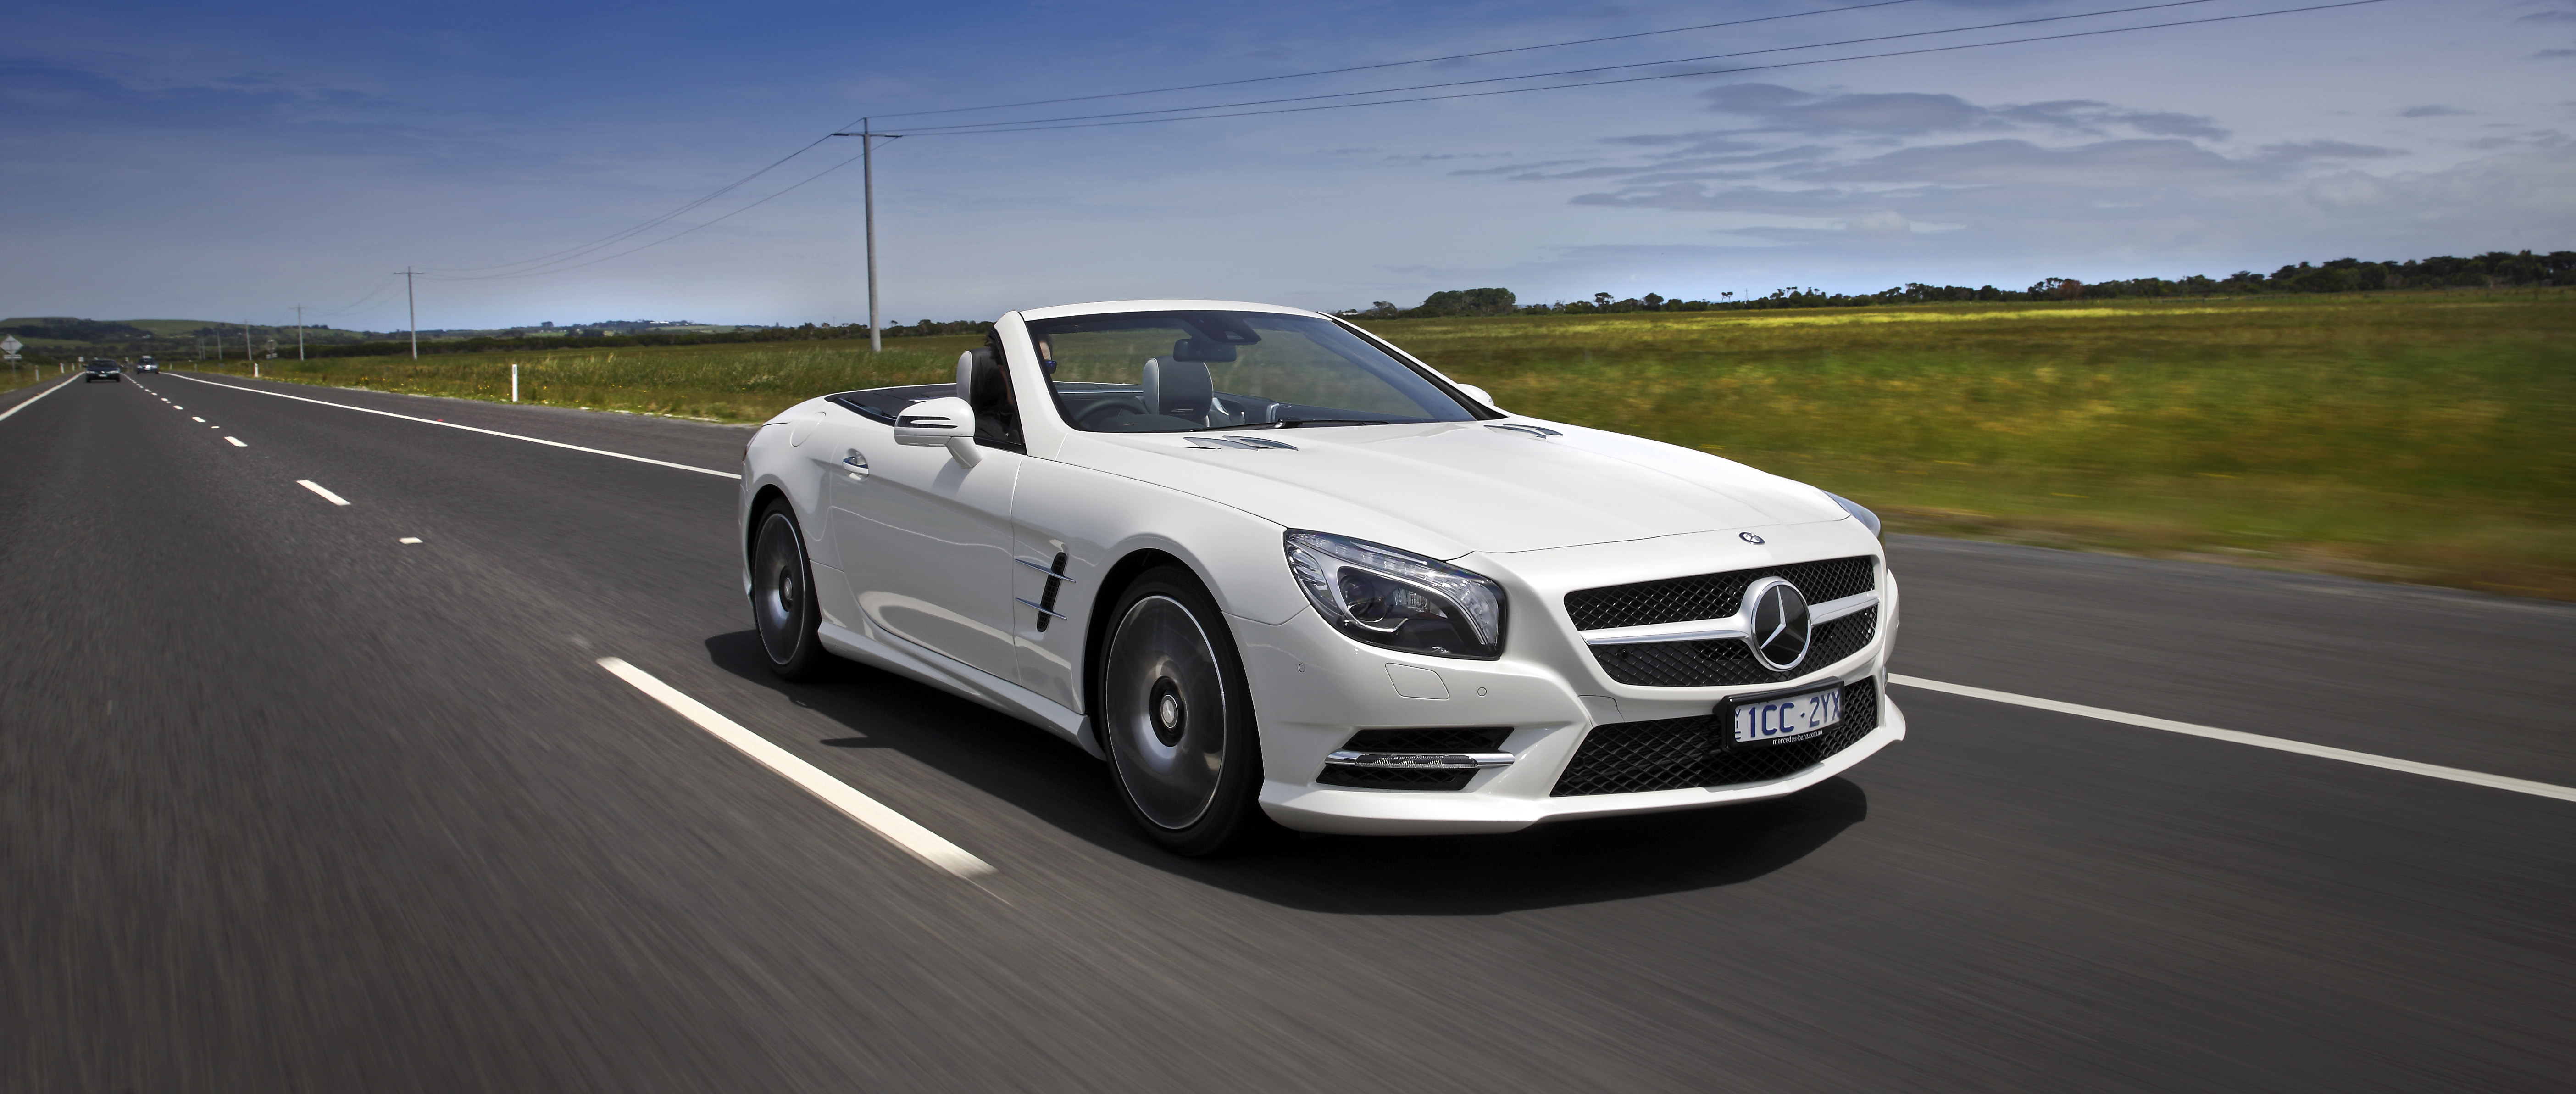 2015 mercedes benz sl400 review caradvice for Mercedes benz mbrace reviews